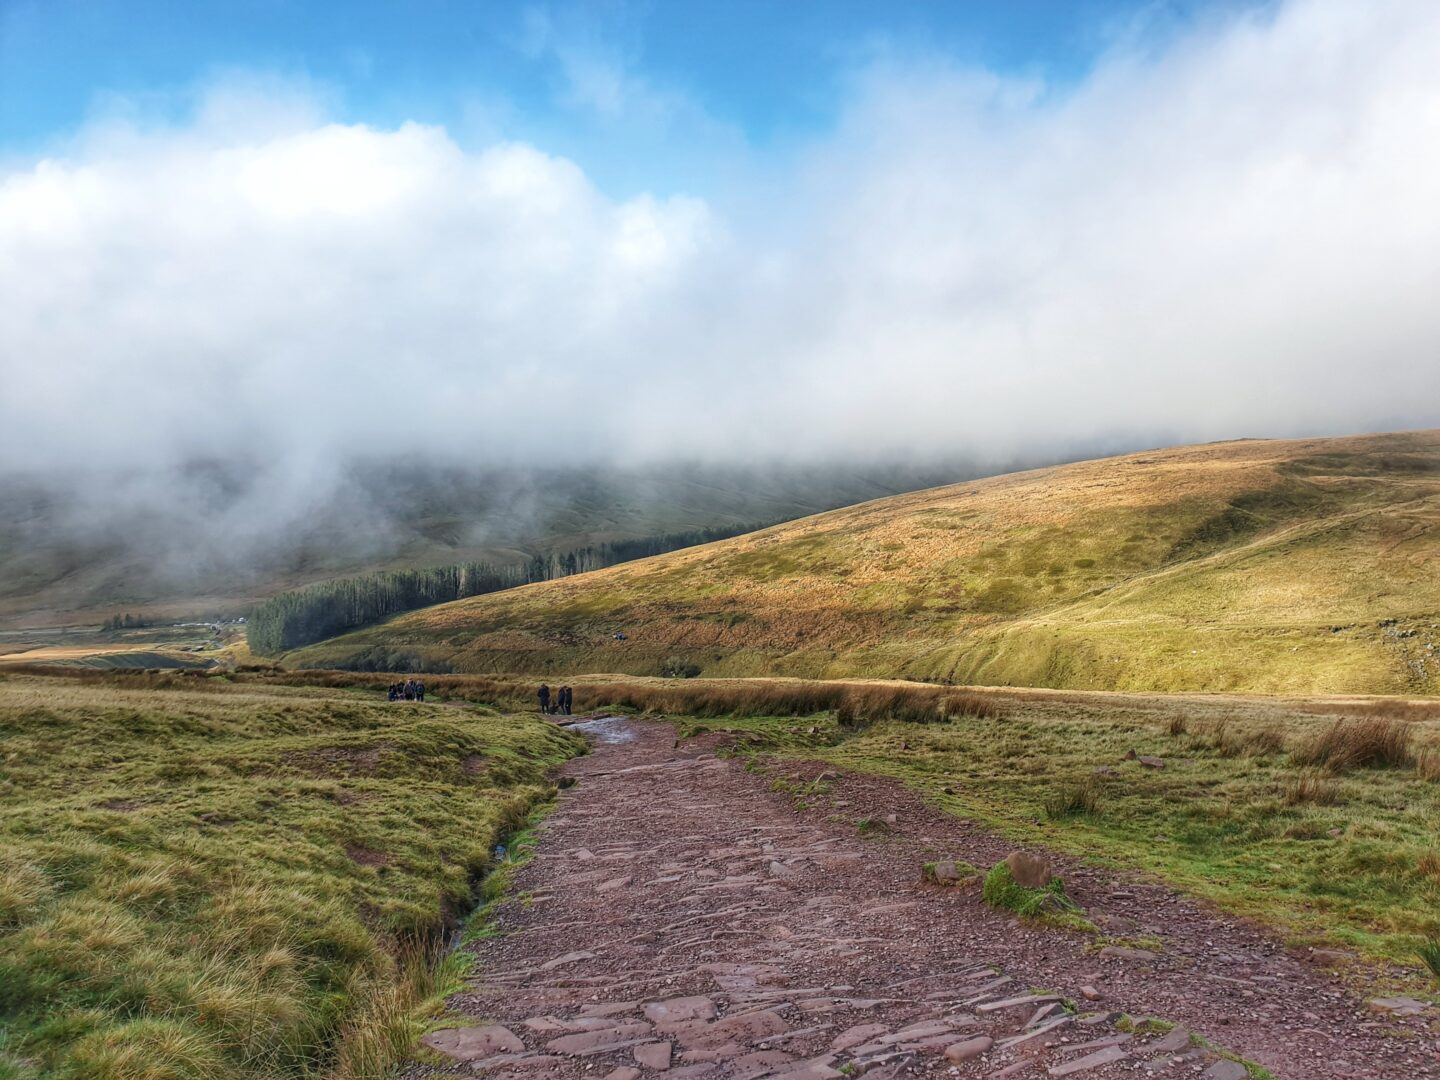 The view looking back down the path on the way up Pen Y Fan